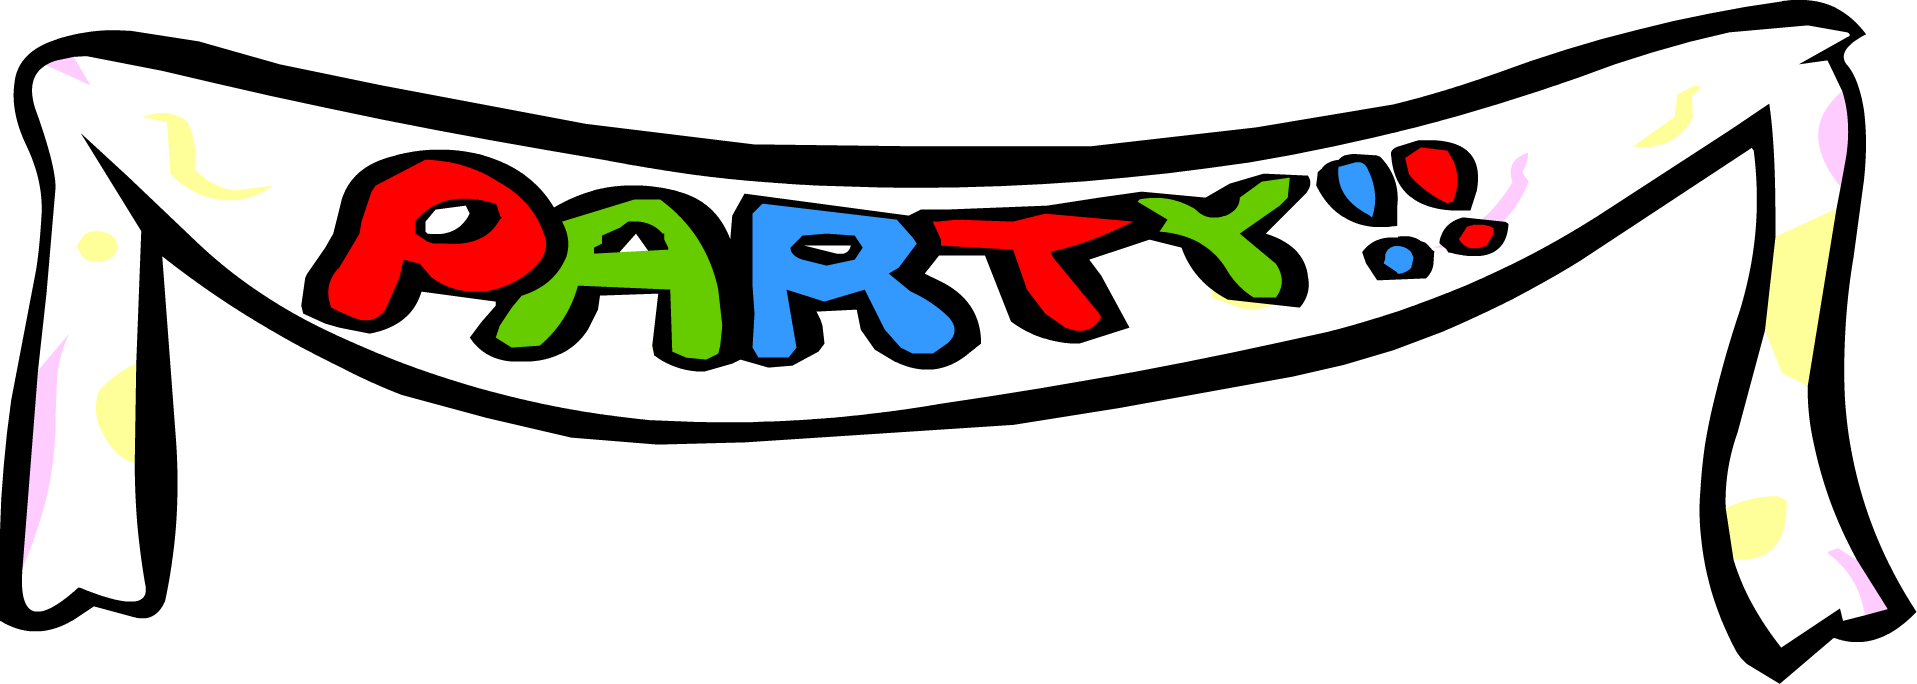 Party banners png. Image banner club penguin